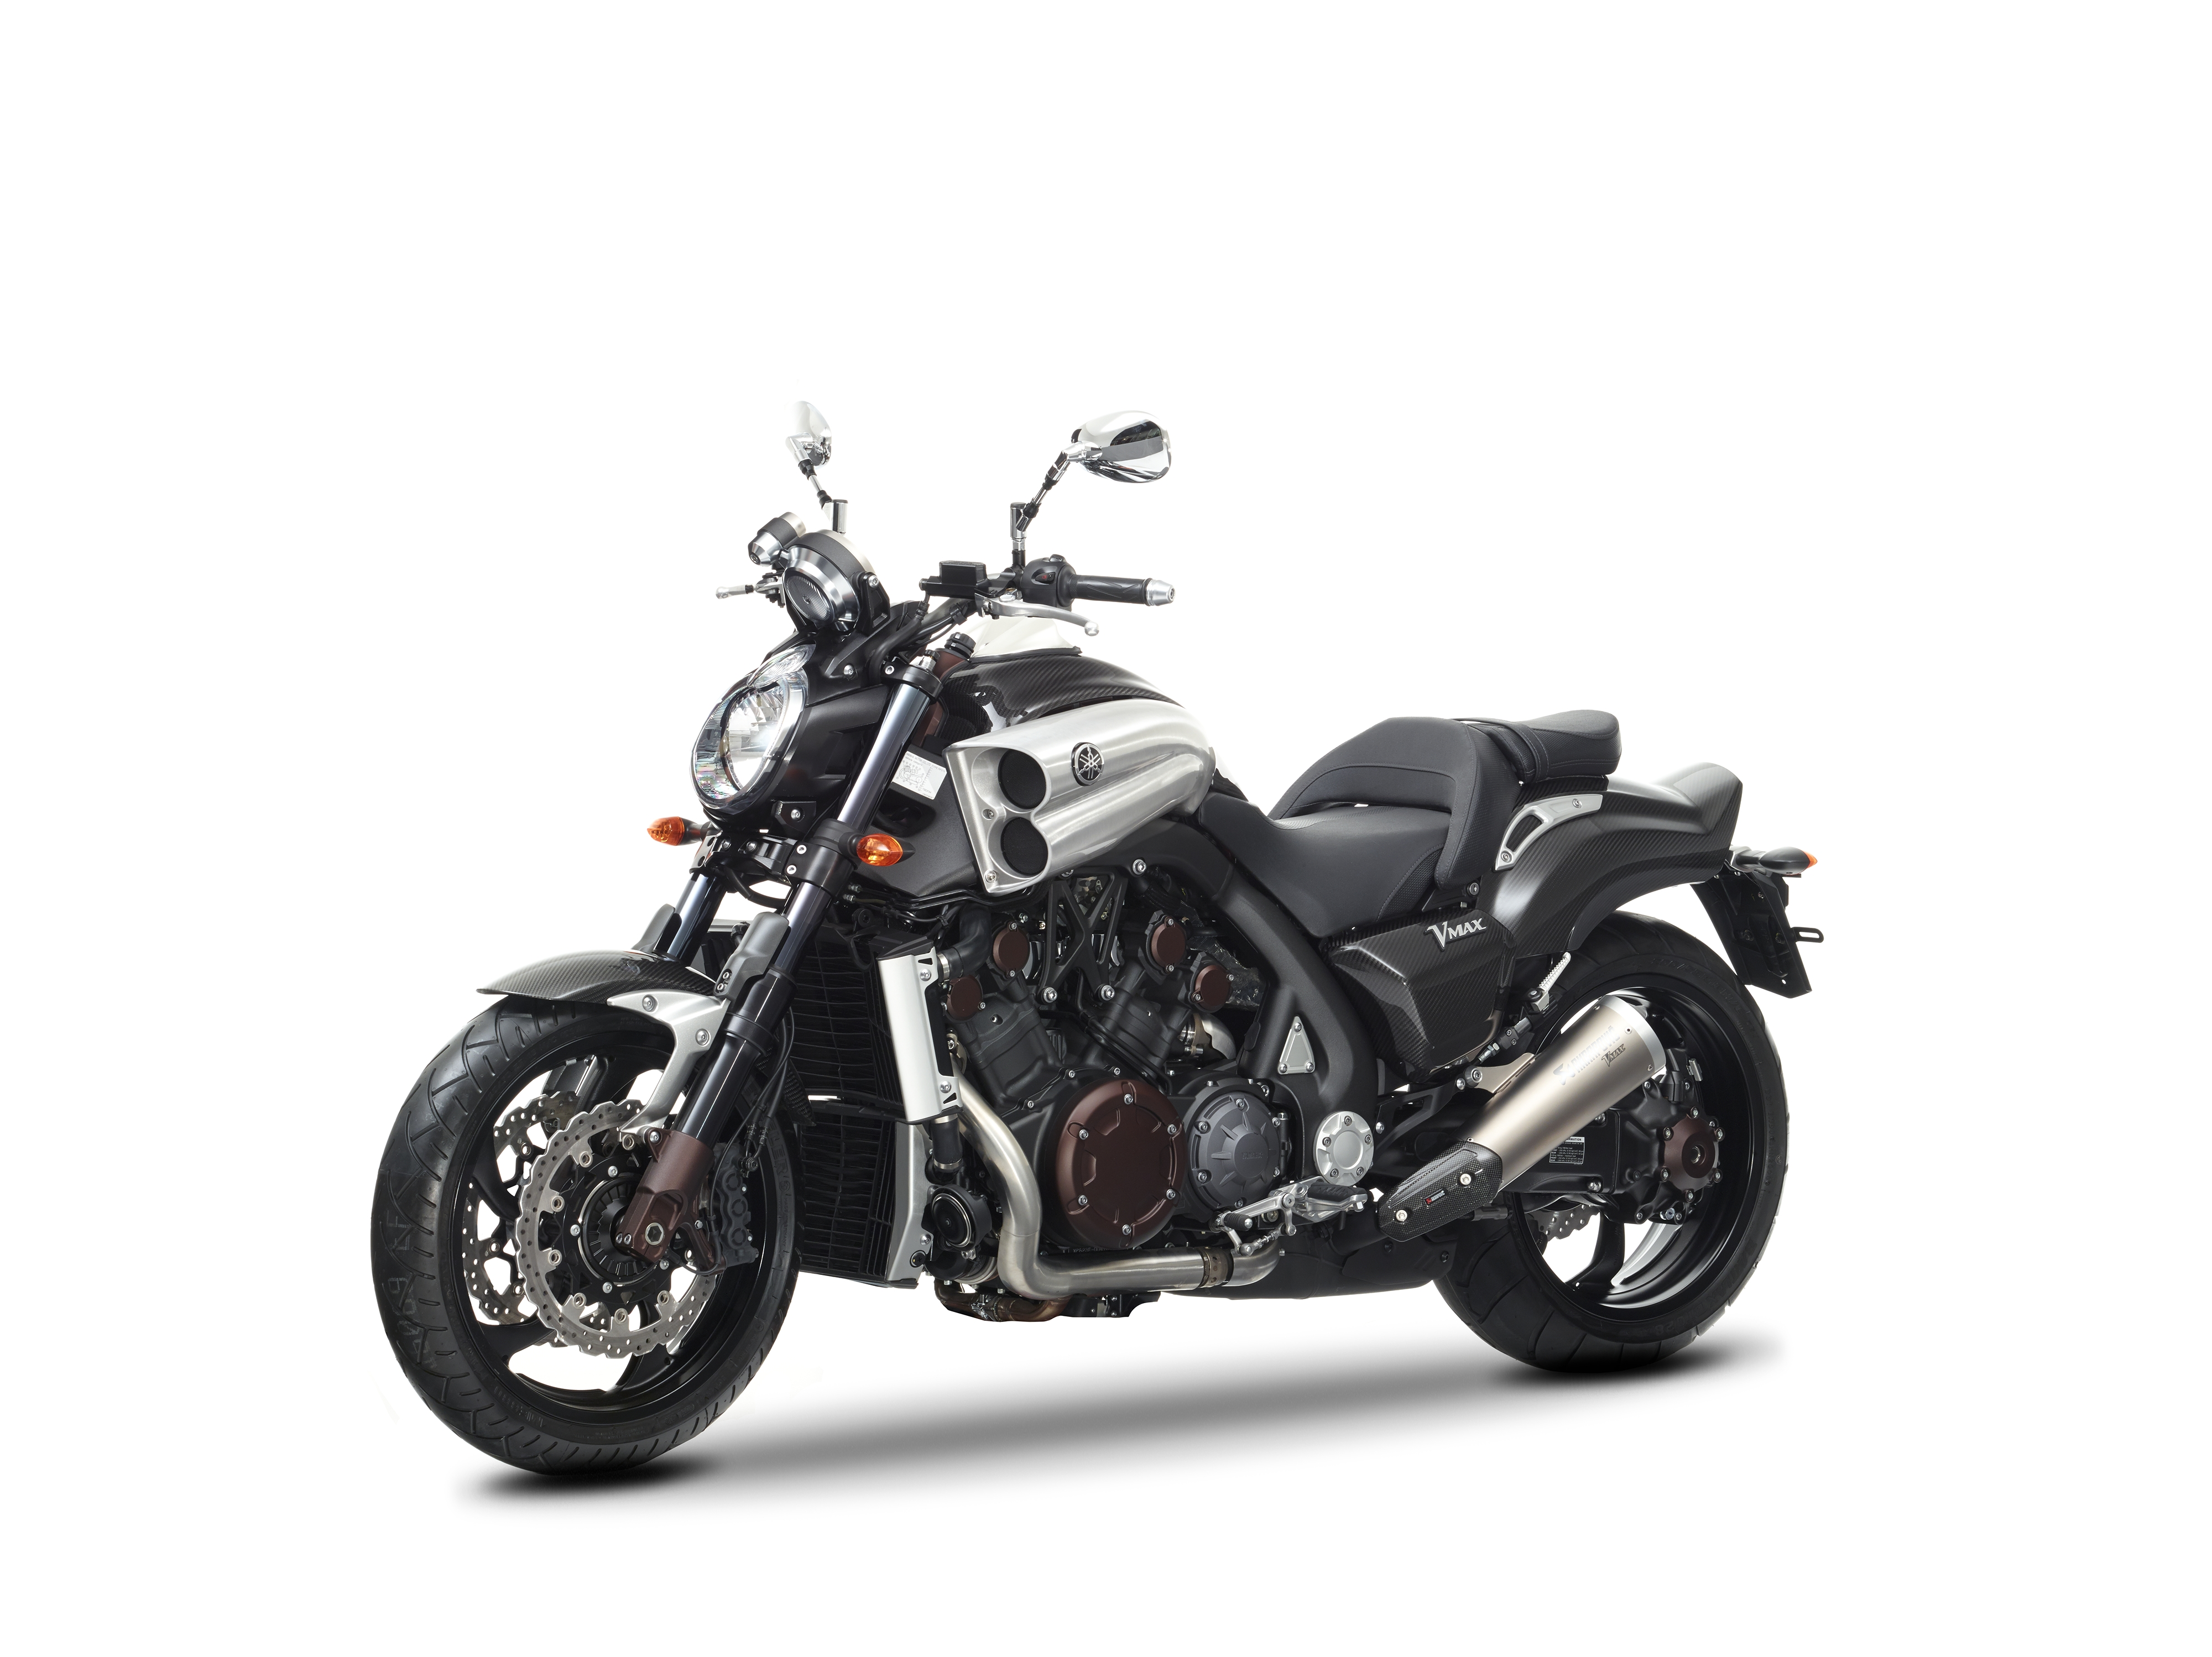 Yamaha Reveals Special Edition VMAX Carbon